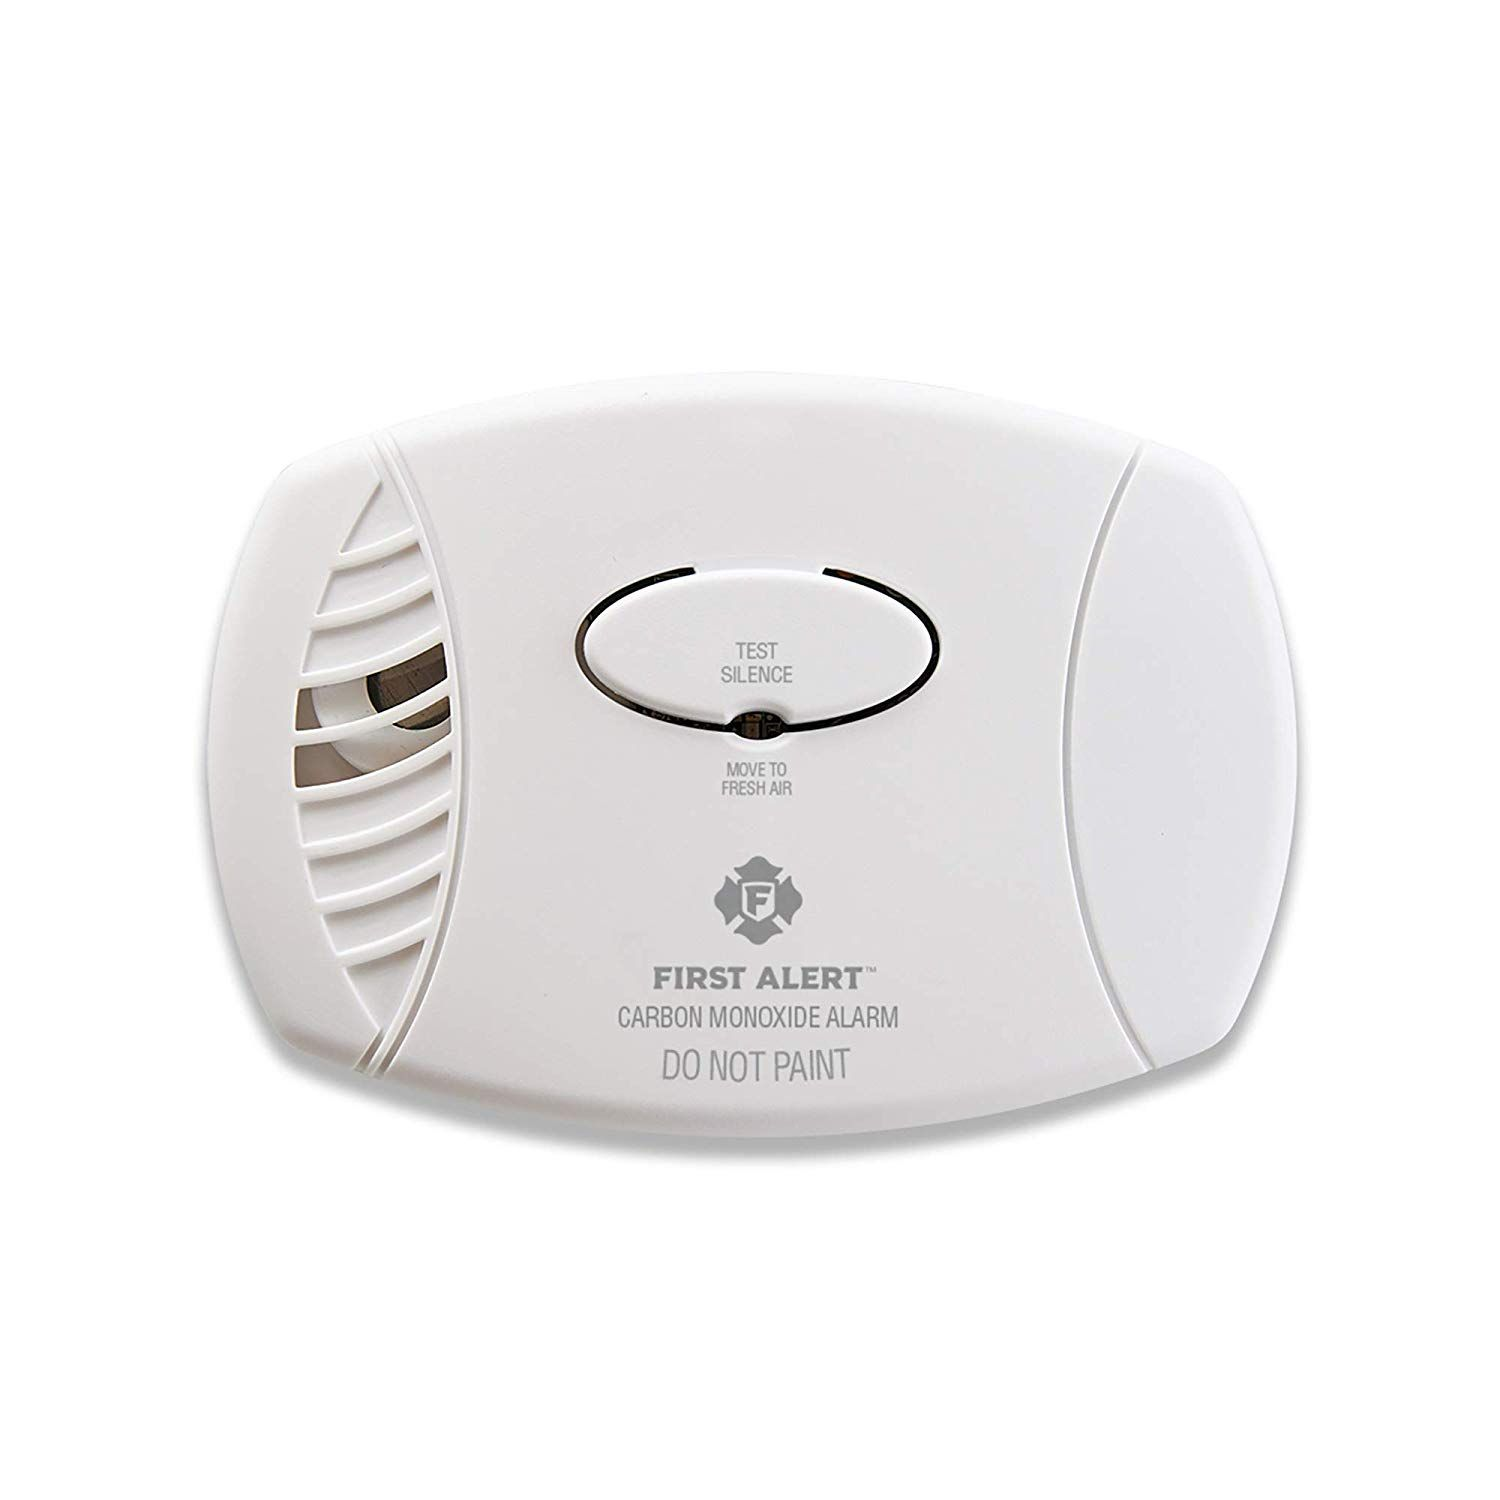 First Alert Carbon Monoxide Detector Only 19 54 Reg 42 Save 53 On This Highly Rated Alarm Head To Amazon To Snag This First Ide